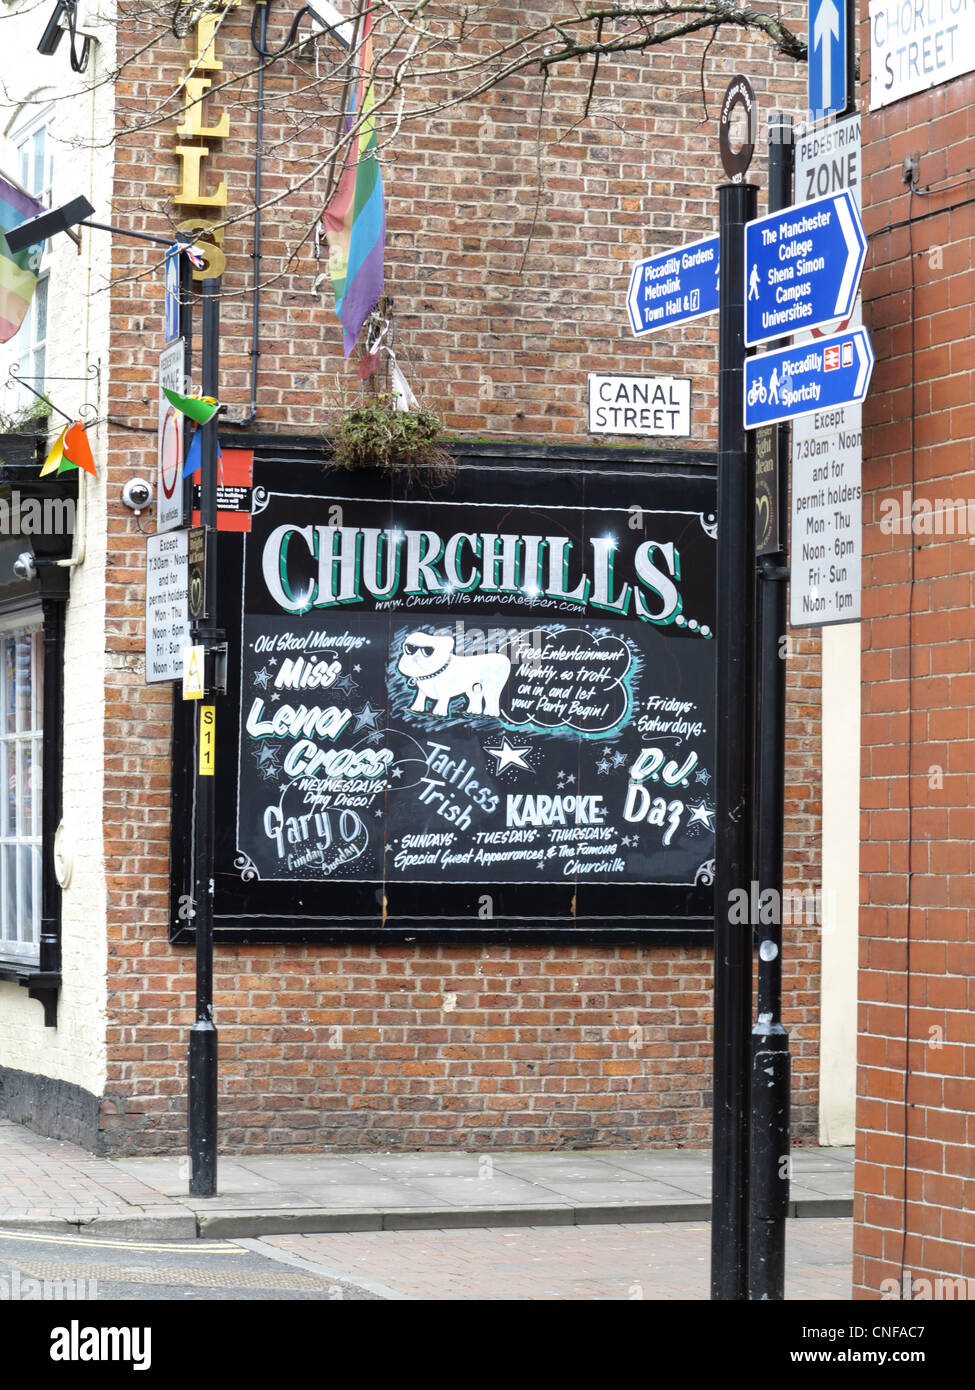 Churchills pub, Canal Street, Manchester - Stock Image